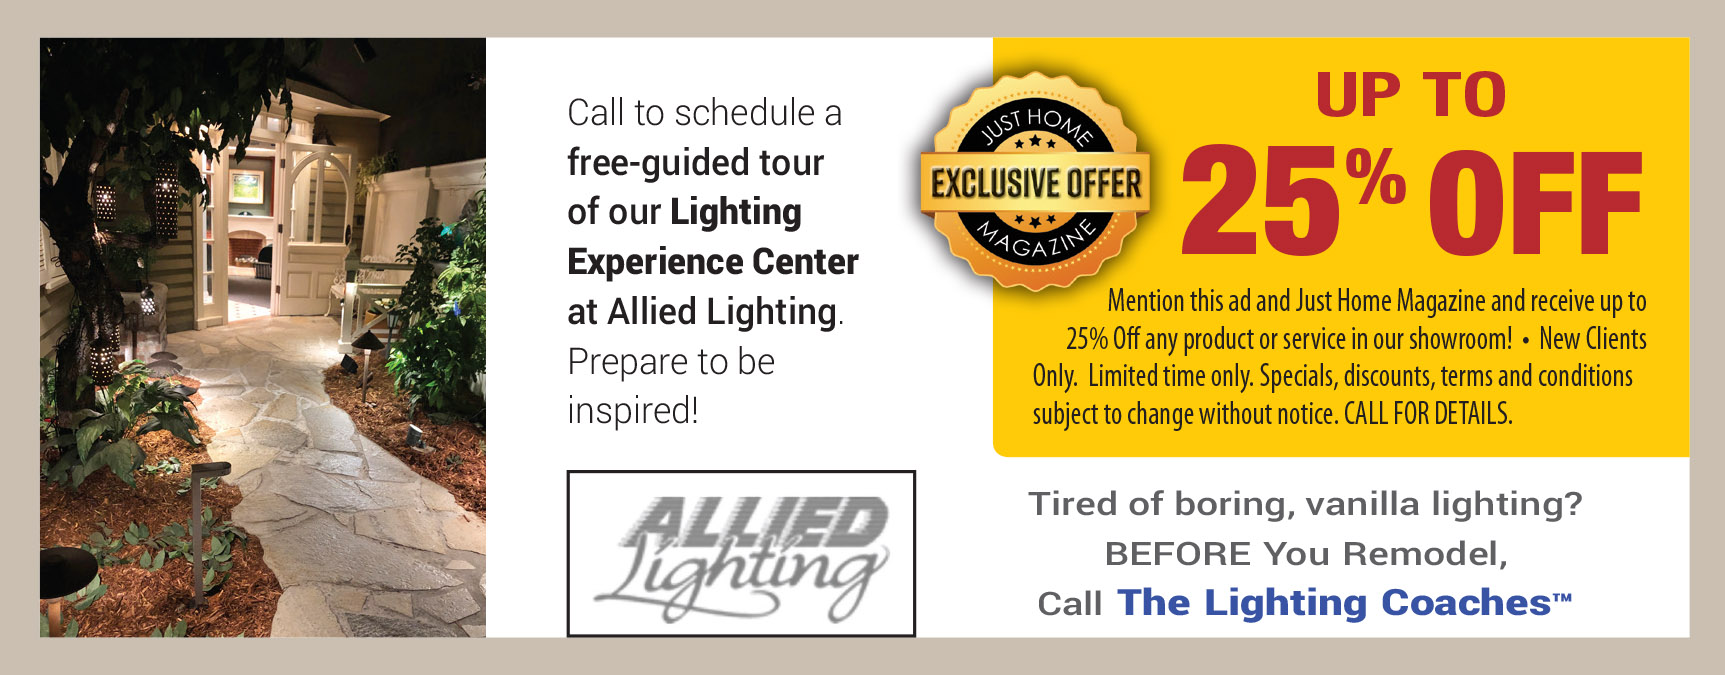 Allied Lighting_Offer_Reg-2_03-19.jpg